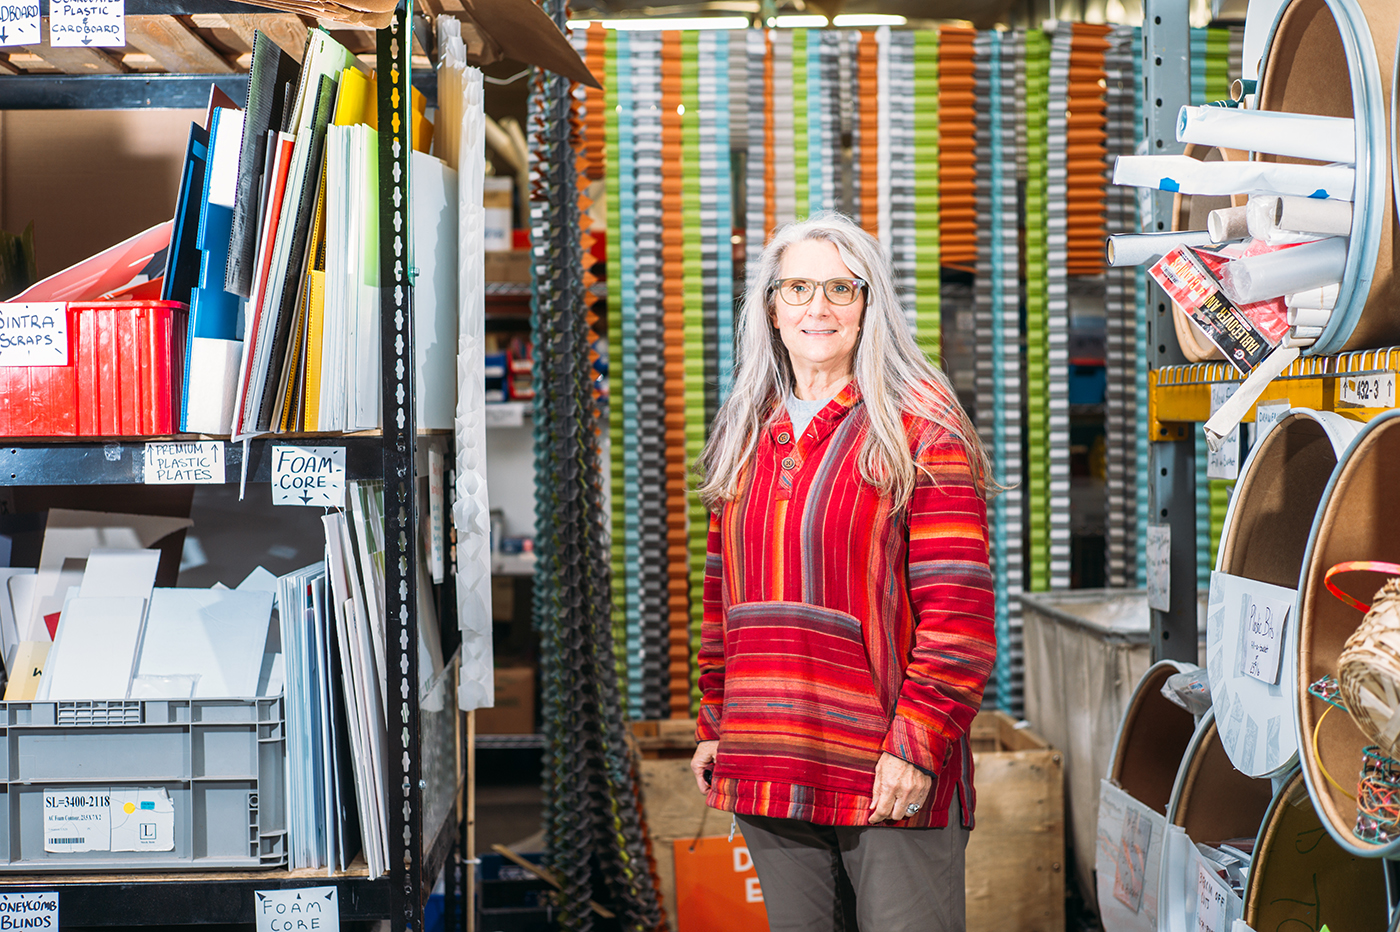 """Sheri Gibb aspires to make Clever Octopus the premiere """"Creative Reuse Center"""" in Utah through discounted materials, programs and workshops."""